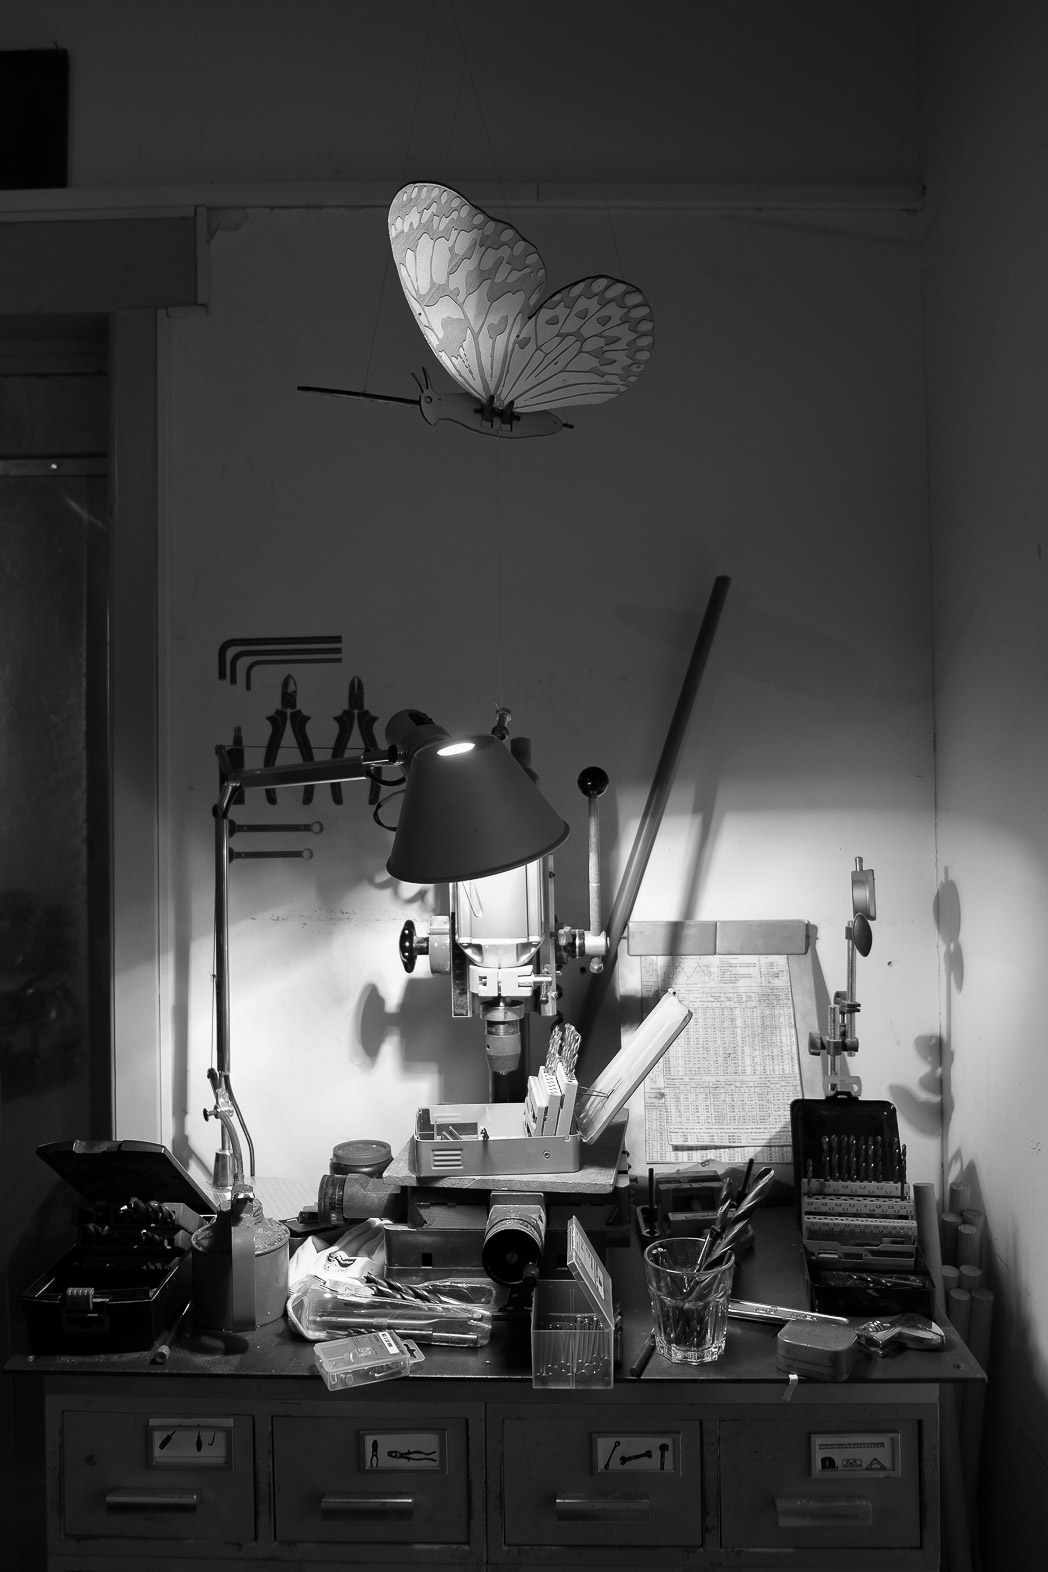 photograph of a detail inside FabLab Amsterdam of objects on top of a shelf of drawers for tools: there are drill bits, a drill press, a desk lamp lighting the scene dramatically and a laser cut and etched butterfly flying over the scene